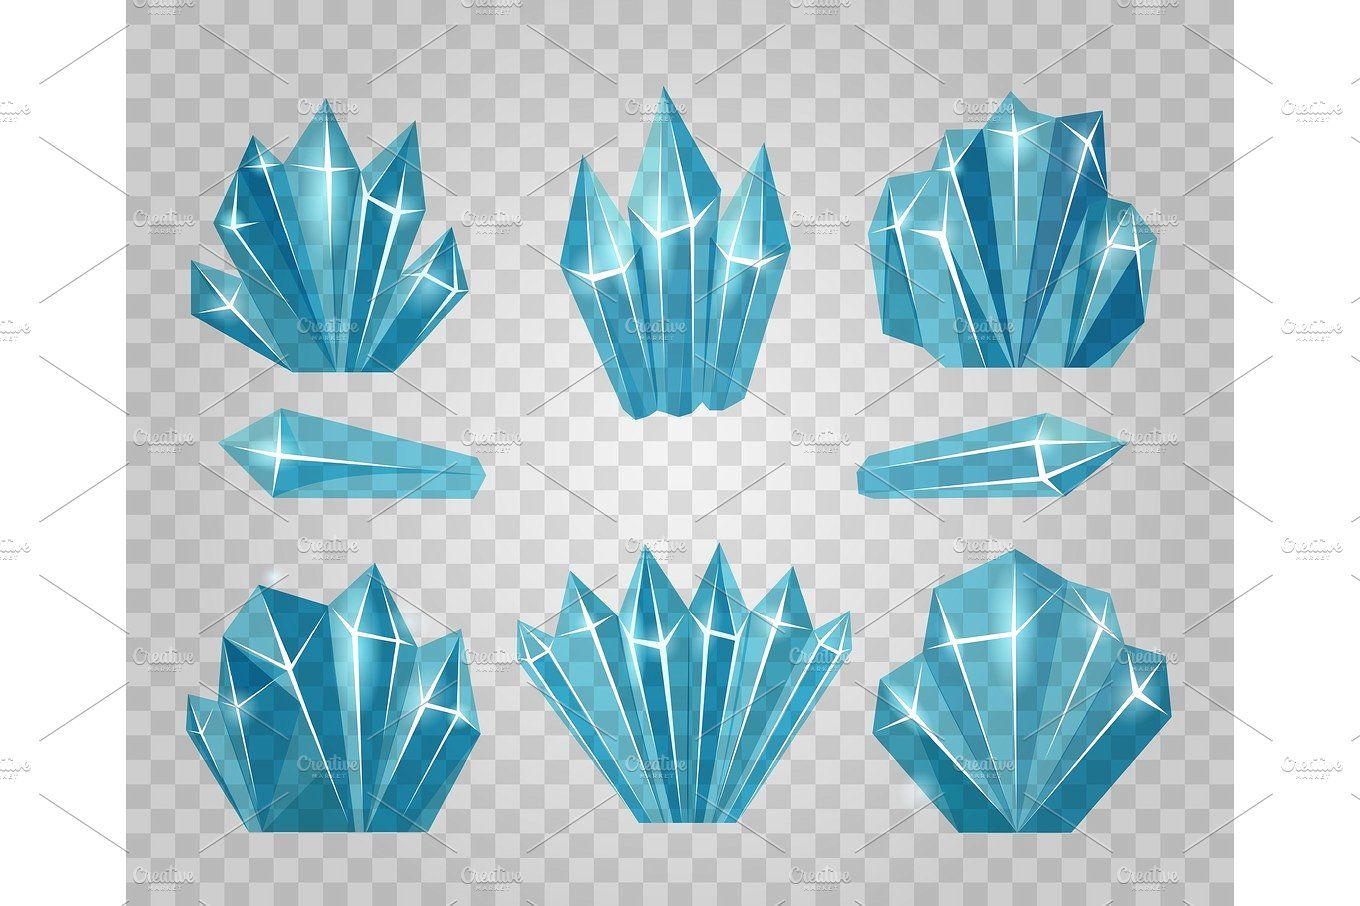 Ice Crystals Isolated On Transparent Background Crystal Drawing Crystal Illustration Ice Drawing